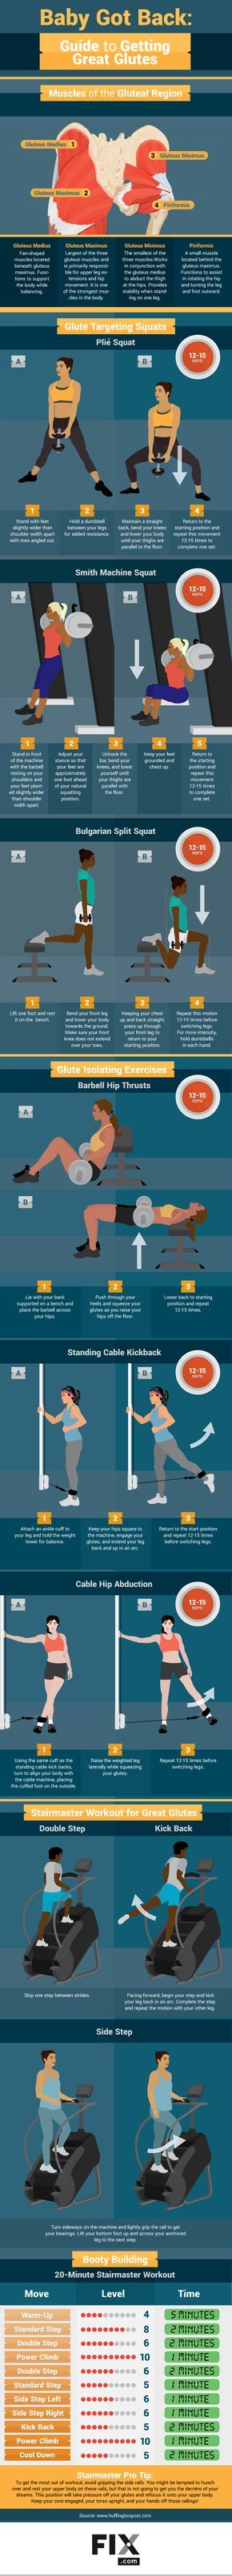 Try our glute workout for a toned butt! This full routine includes squats, strength training, and a cardio Stairmaster workout!